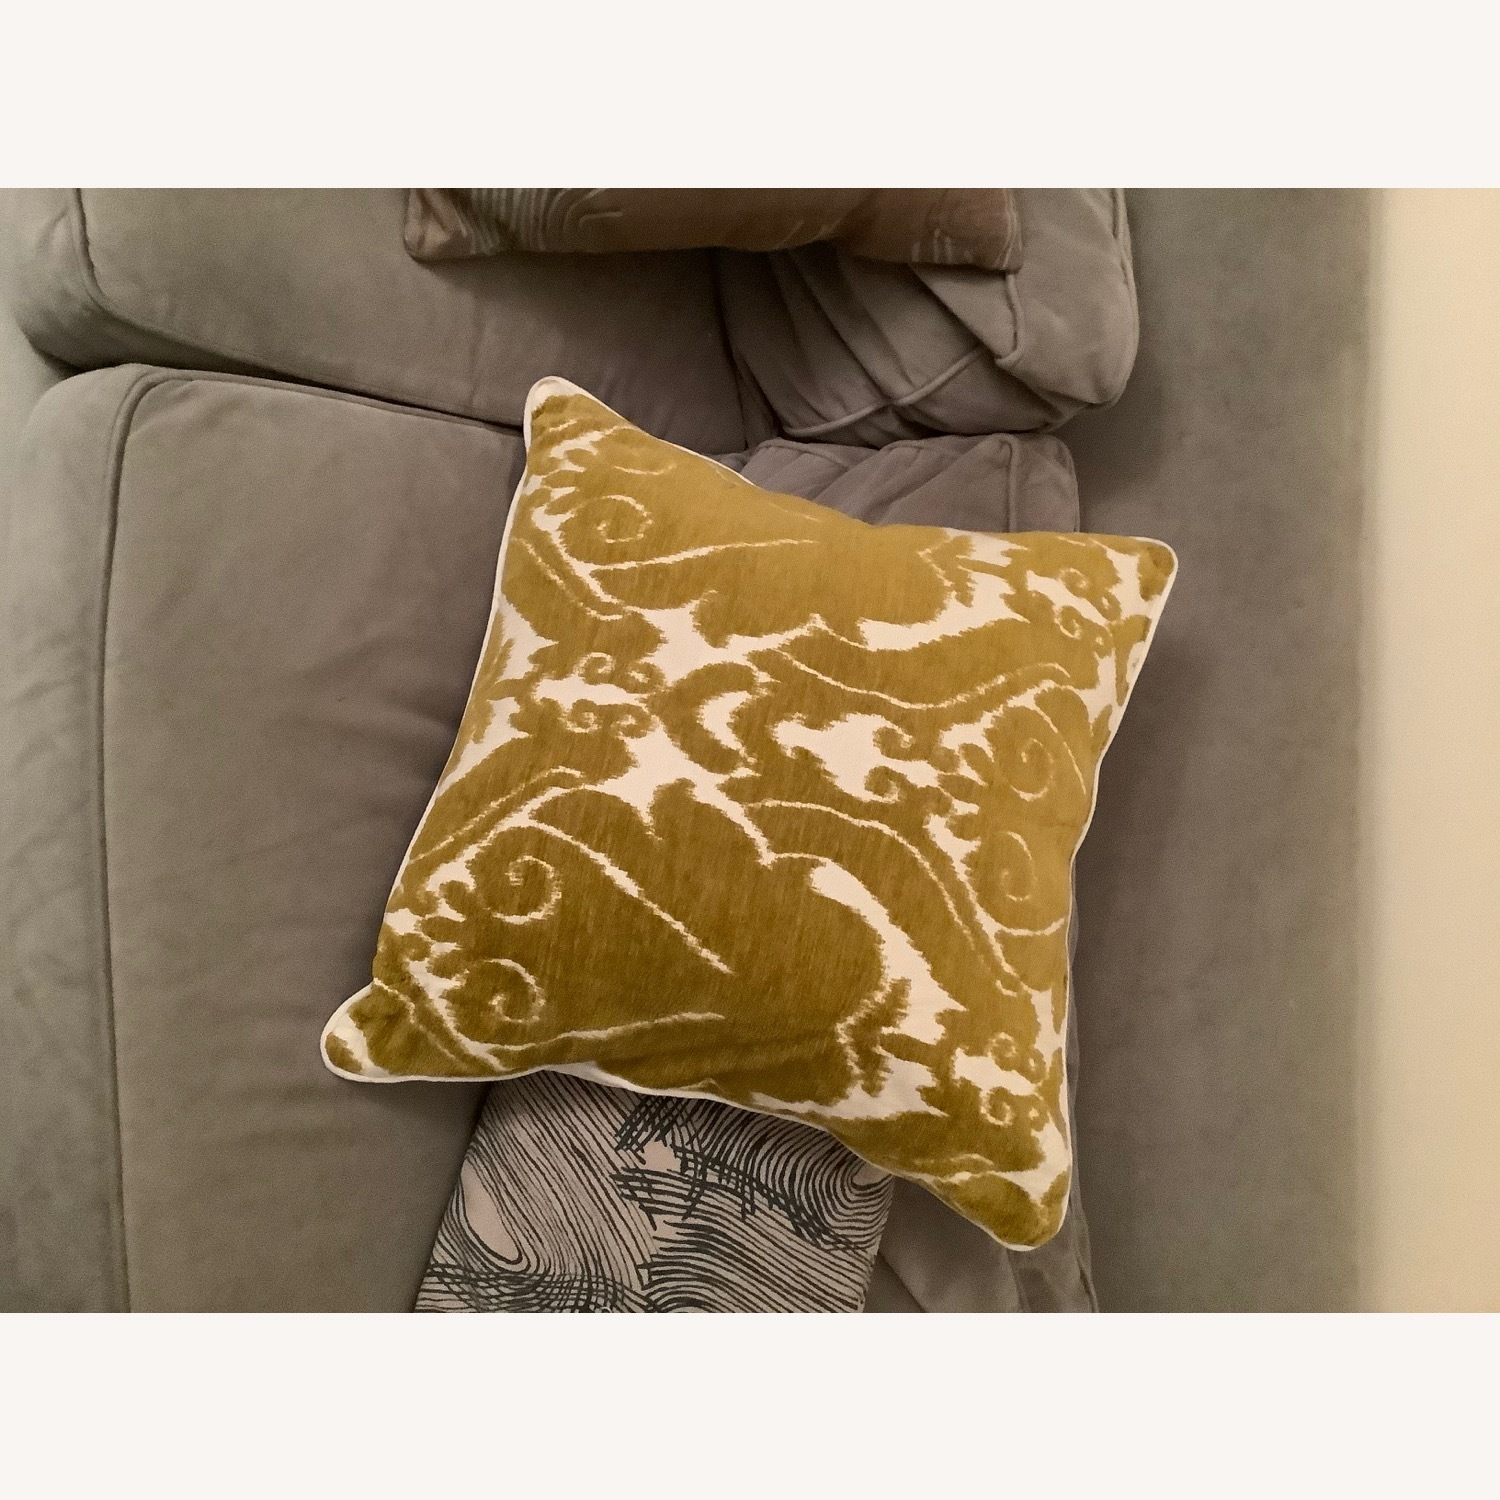 Jacquard Woven Chenille Throw Pillow - image-4